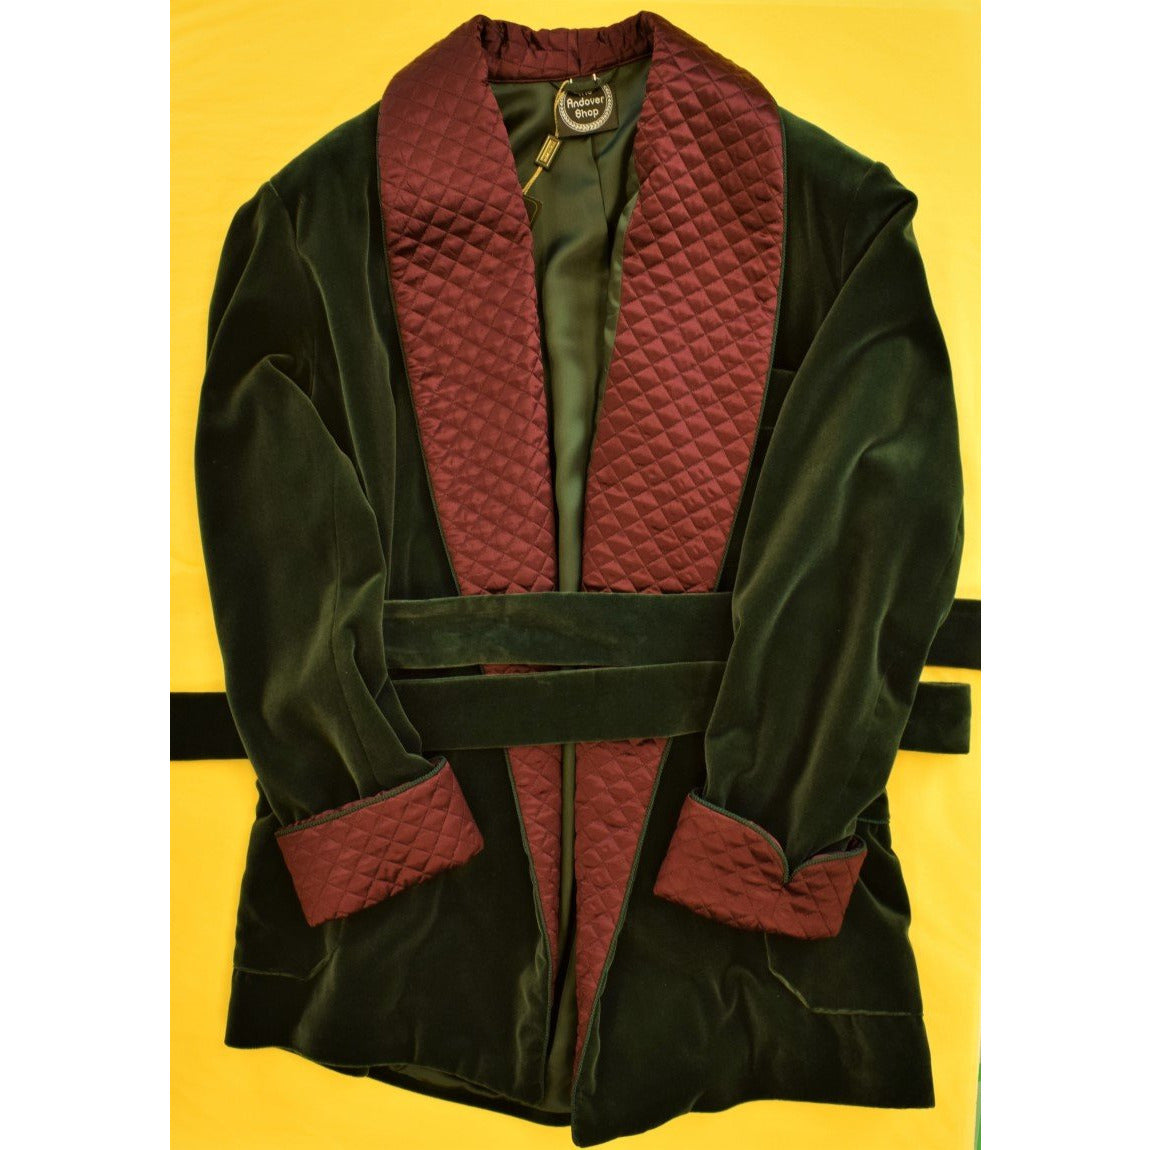 The Andover Shop Italian Bottle Green Velvet Smoking Jacket w/ Burgundy Trapunto Shawl Collar Sz: XL""